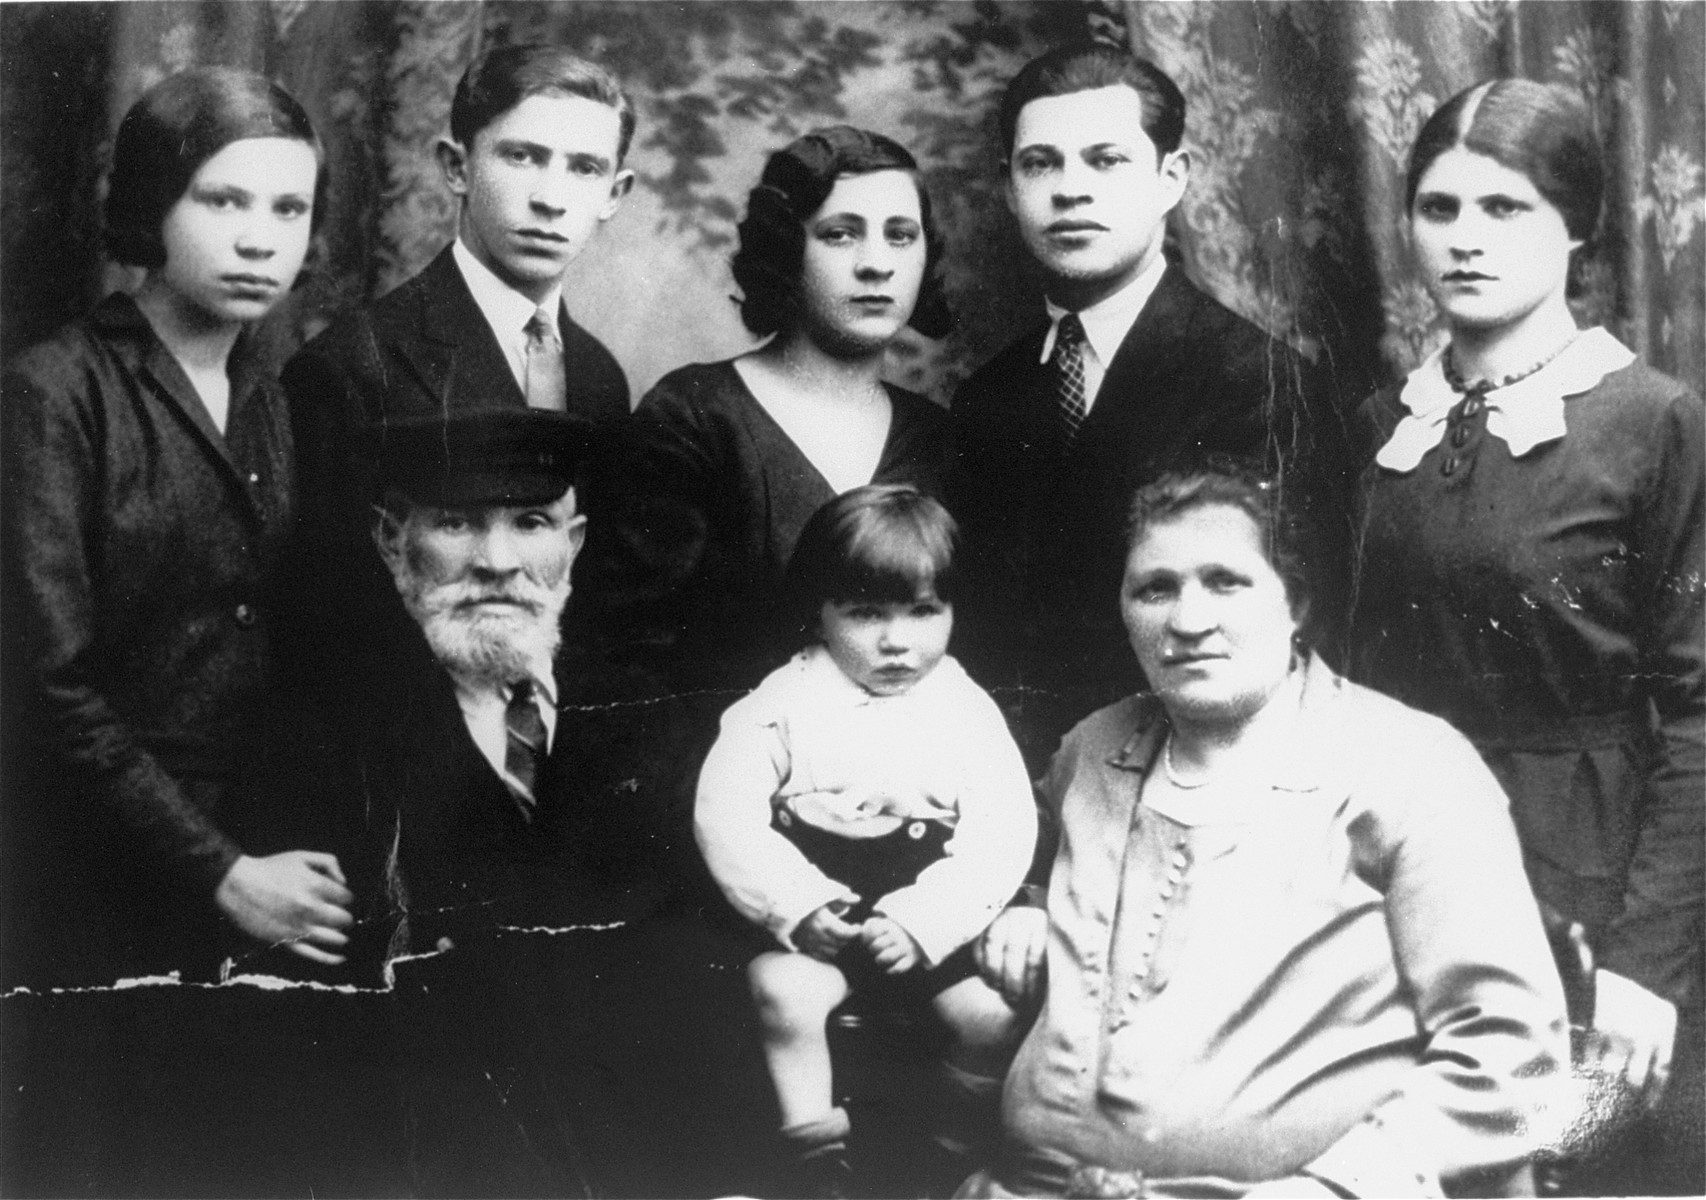 Portrait of the Stabinsky family in Belgium.  Among those pictured is Leon Stabinsky (the young boy).  He survived the war in hiding.